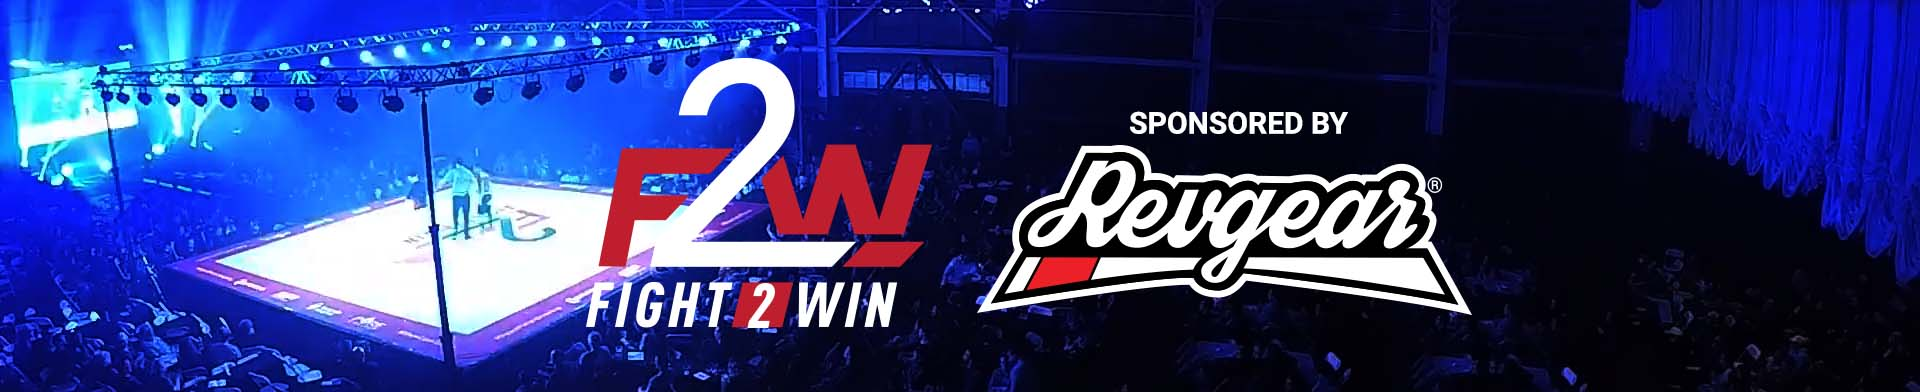 f2win-category-banner-06.jpg